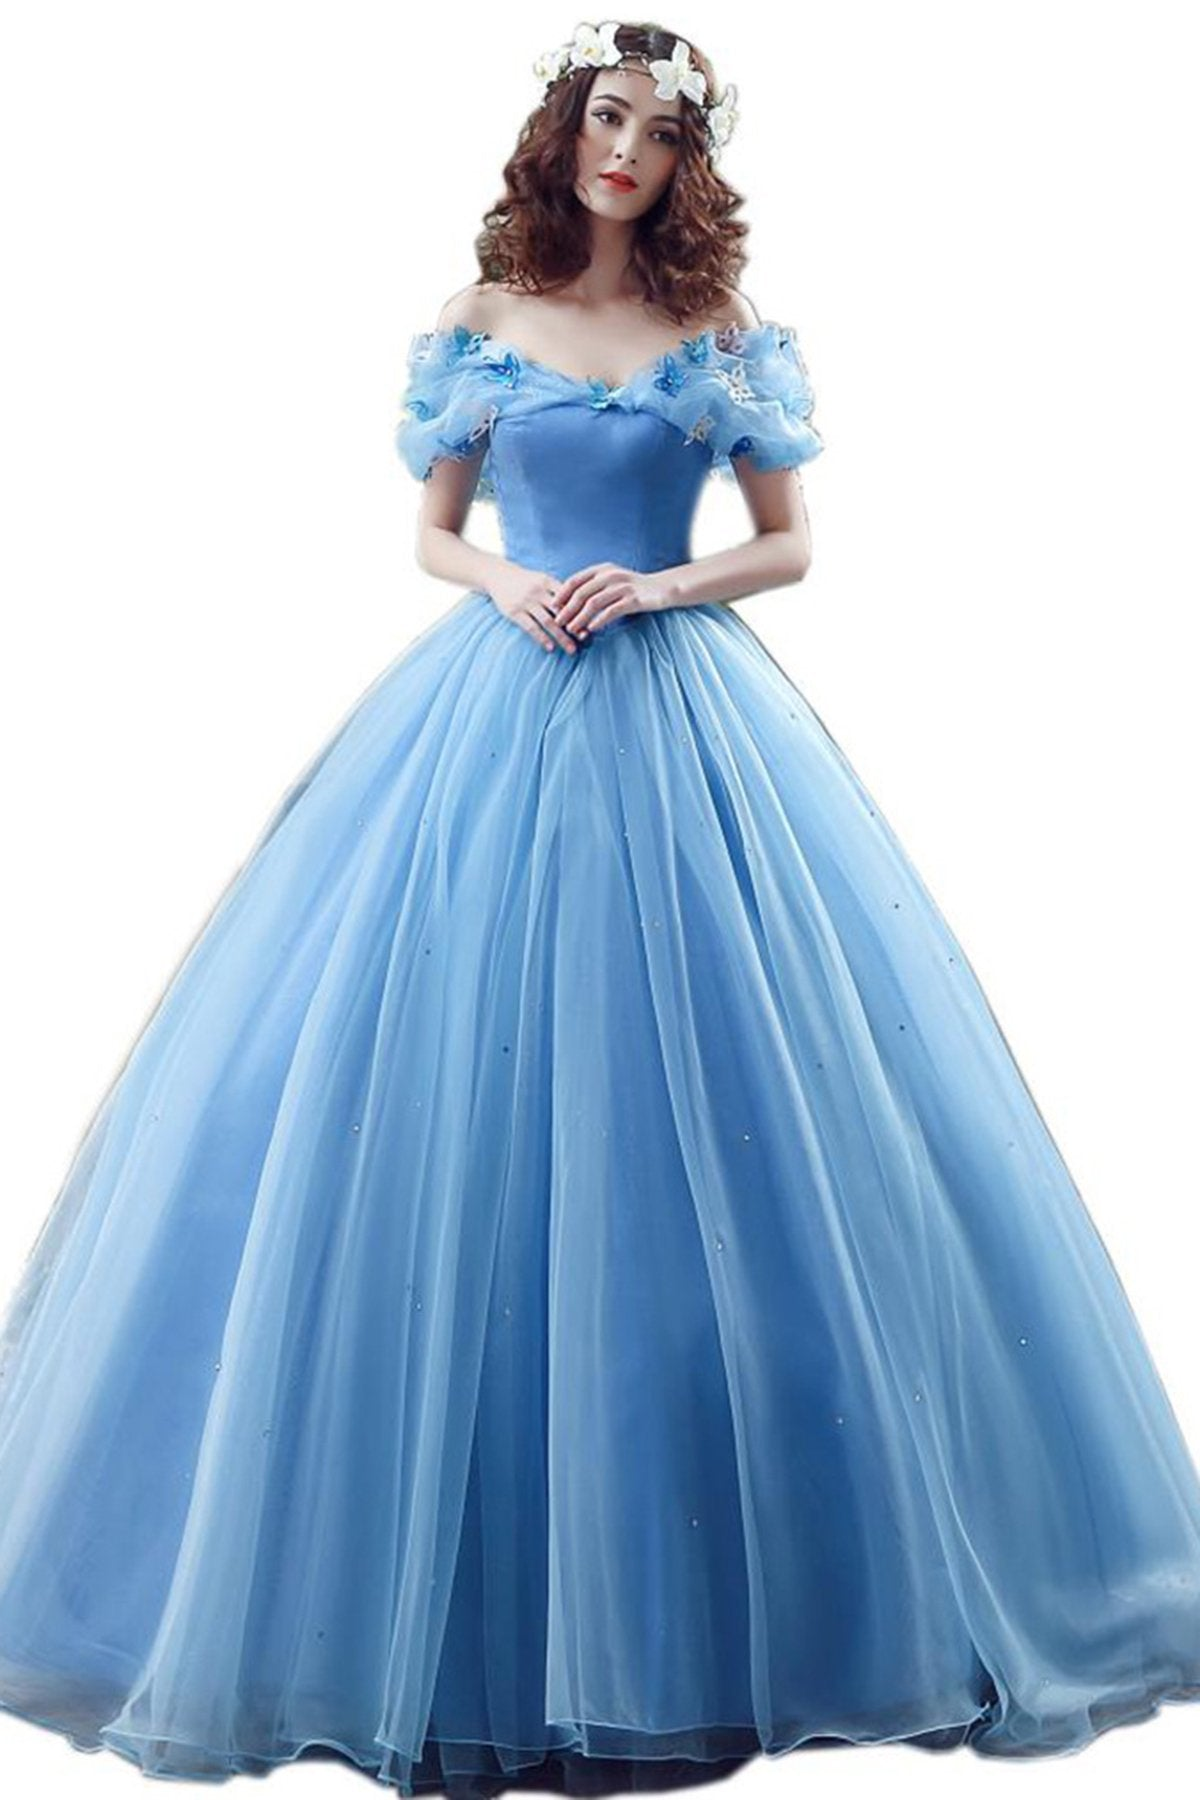 Blue Butterflies Off Shoulder Applique Cinderella Evening Dress Evening Dresses